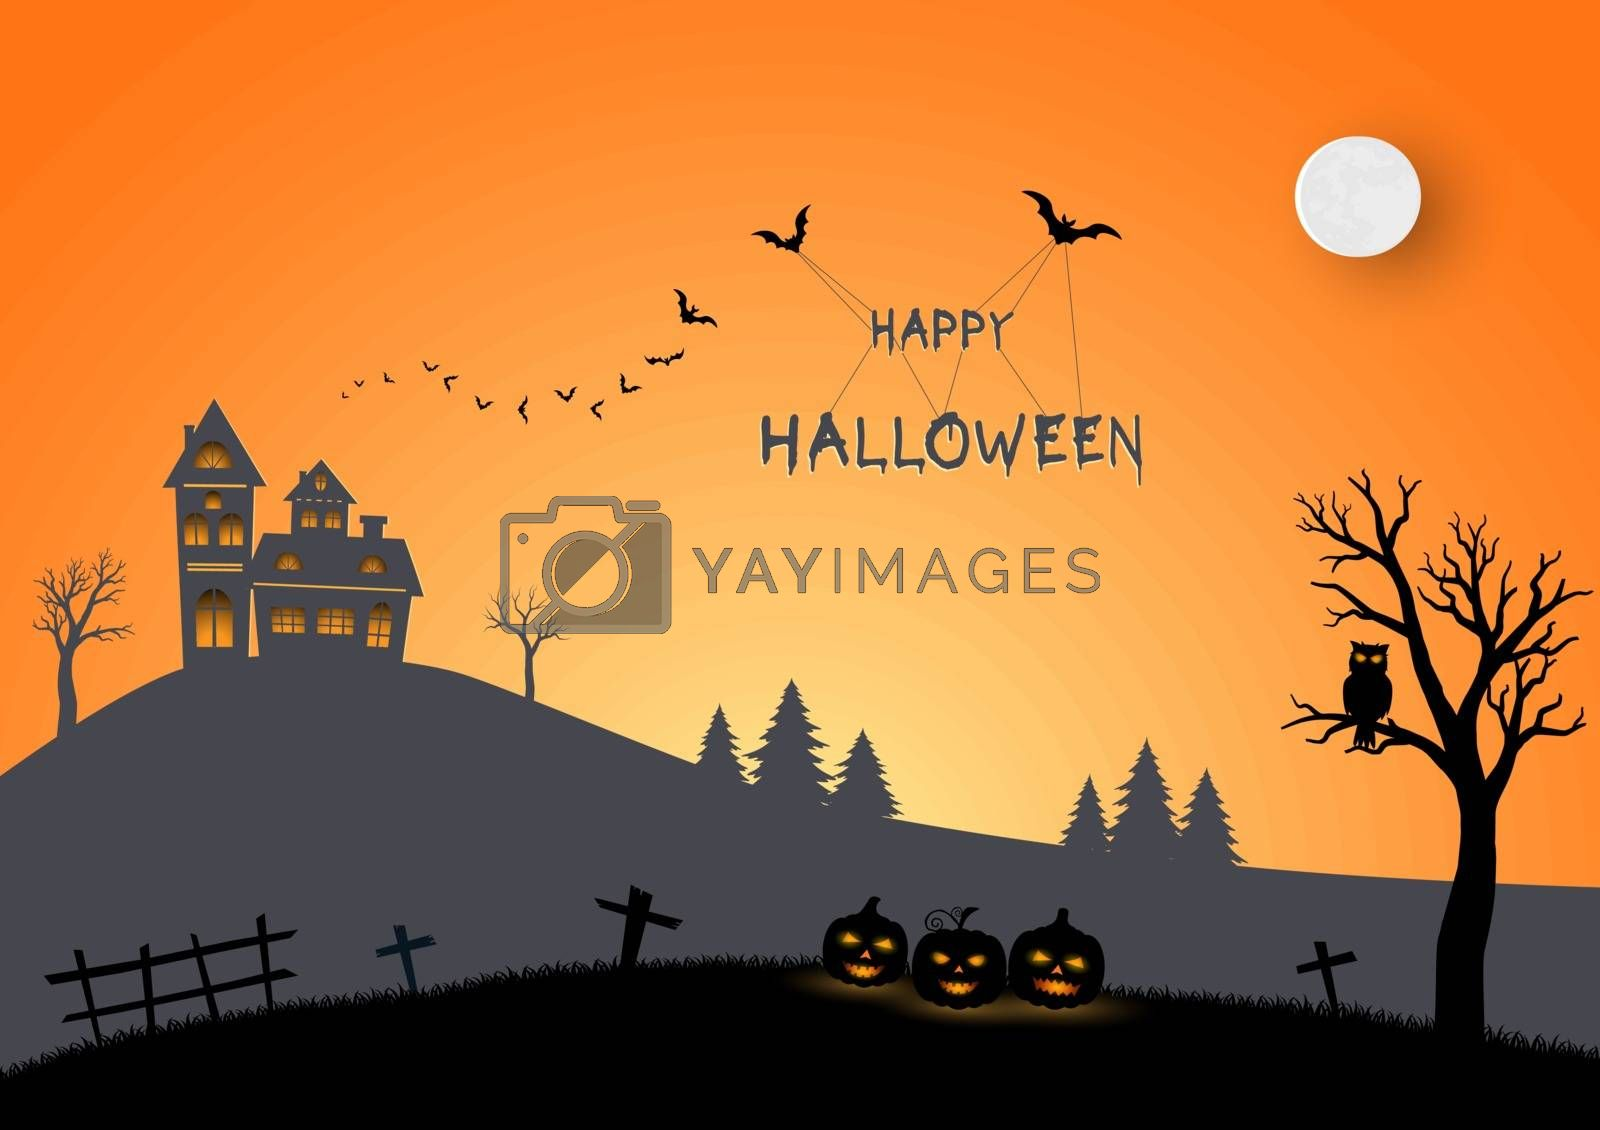 Happy Halloween on paper art and craft style by PIMPAKA